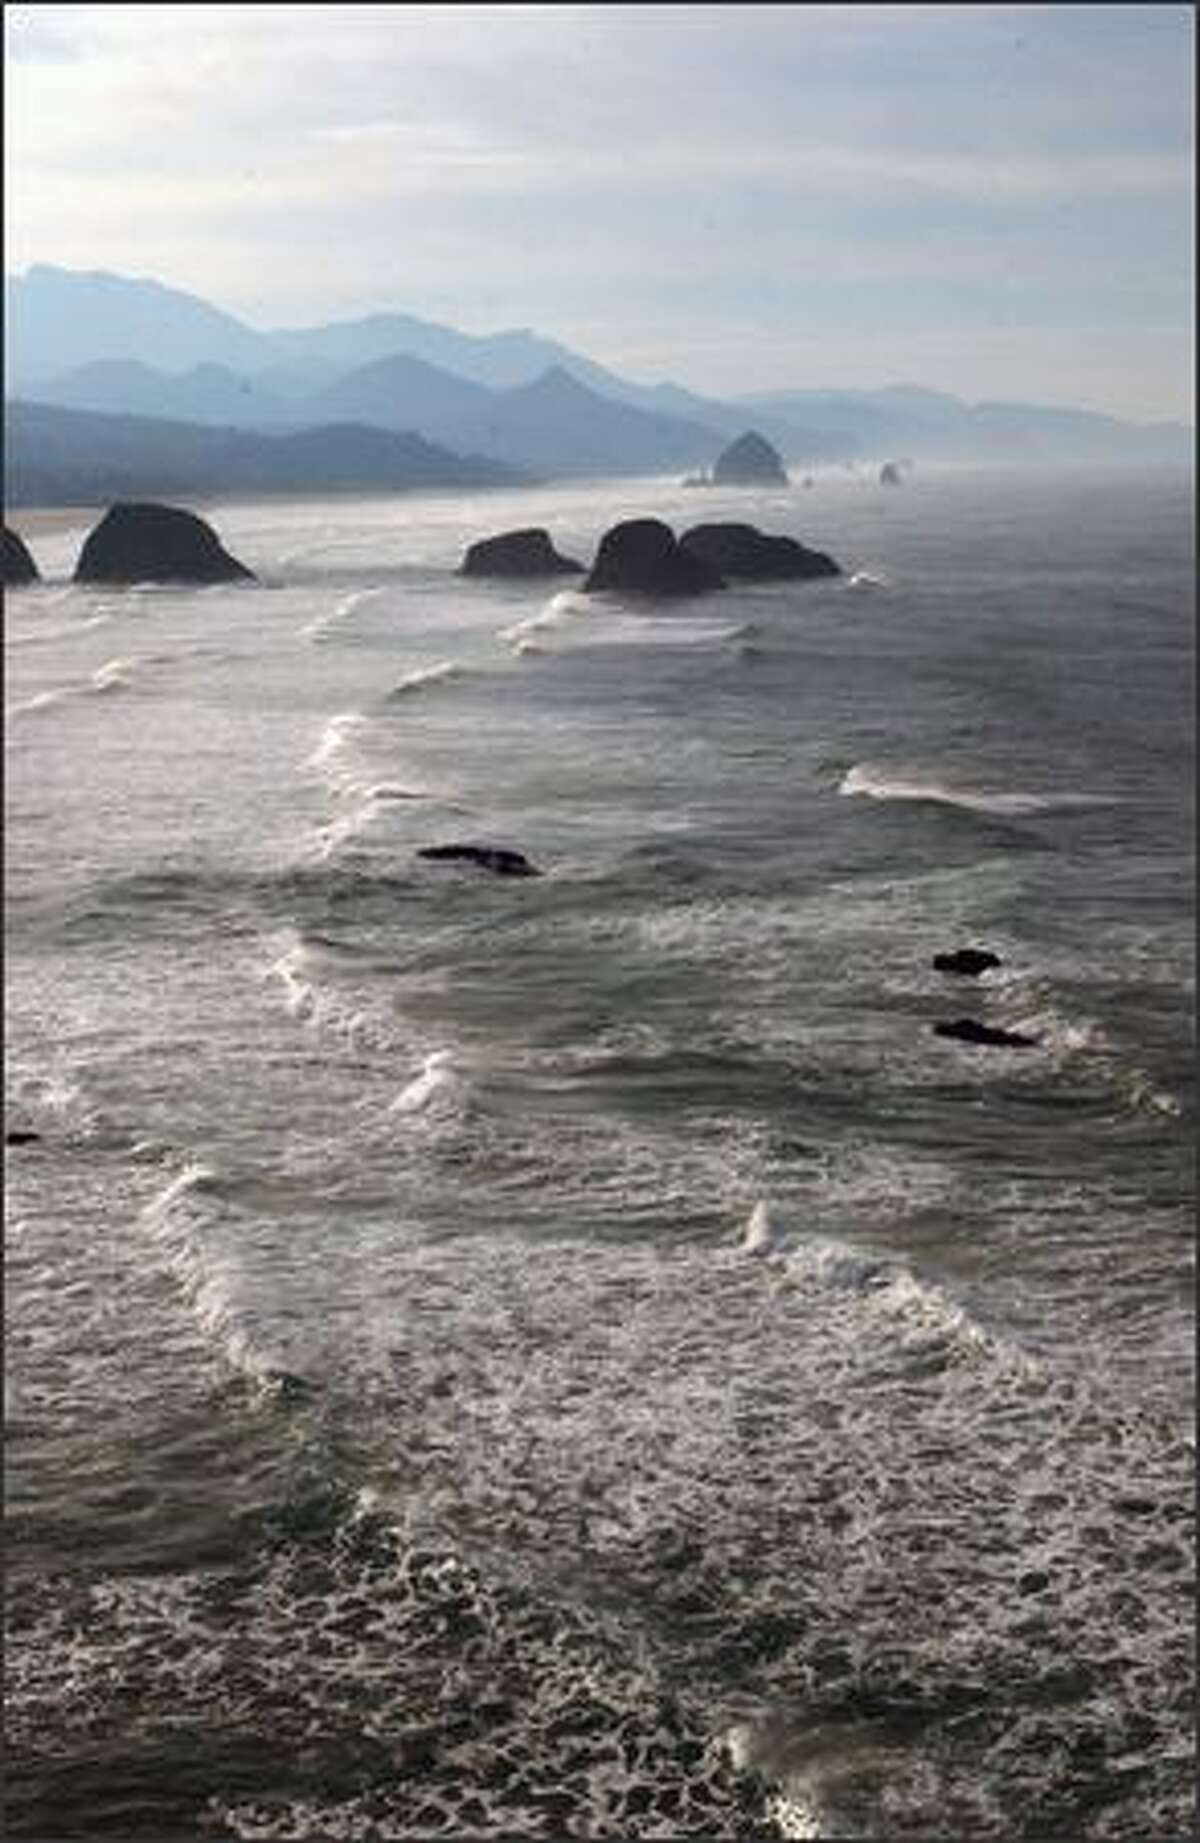 The view from the bluffs of Ecola State Park provides some of the most spectacular scenery to be found on the Oregon coast.